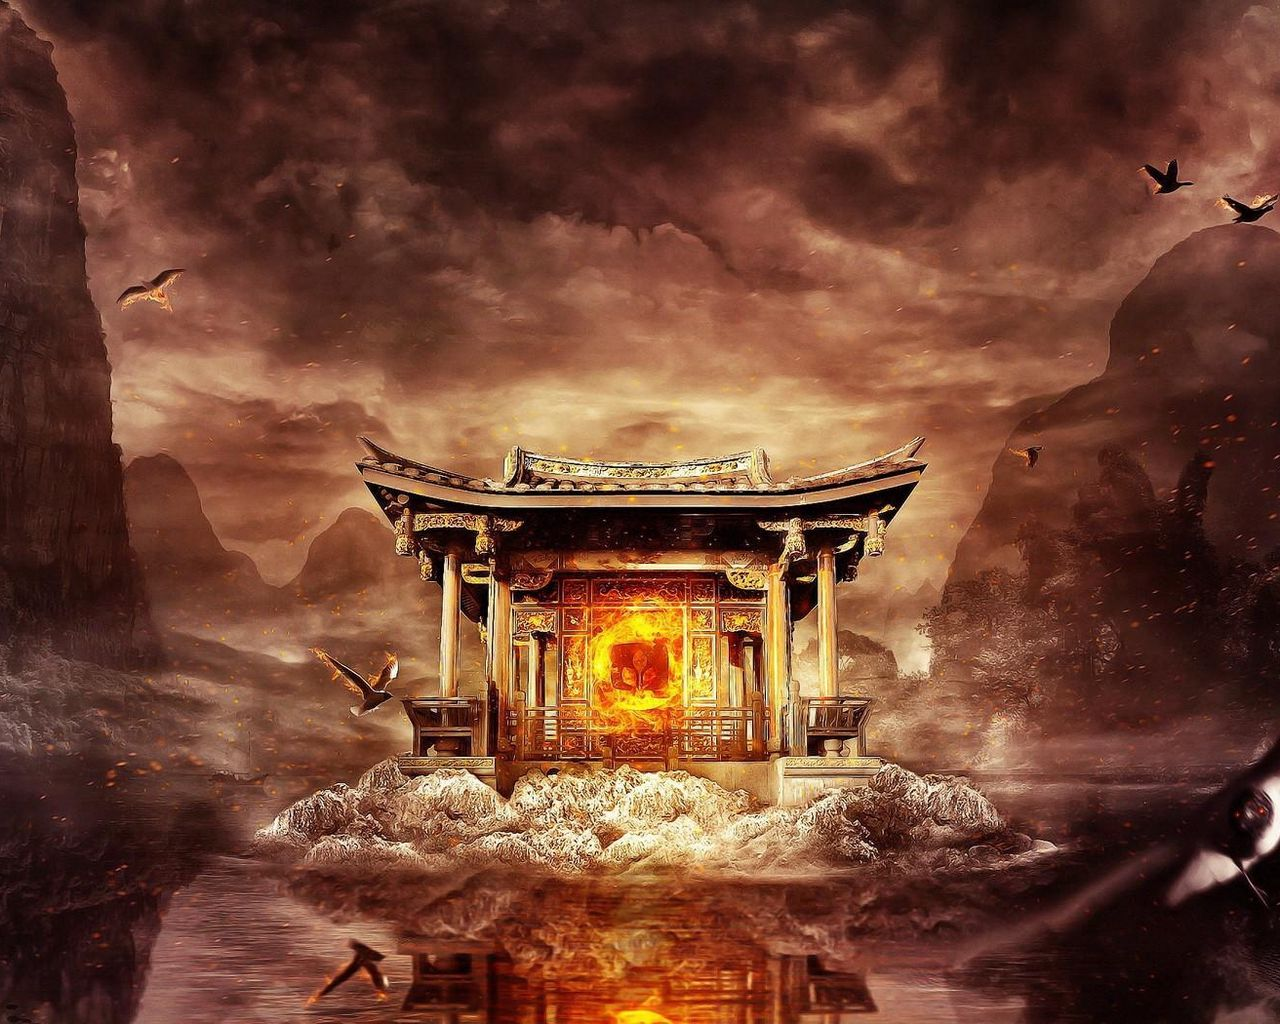 1280x1024 Wallpaper temple, fire, mountains, birds, flying, water